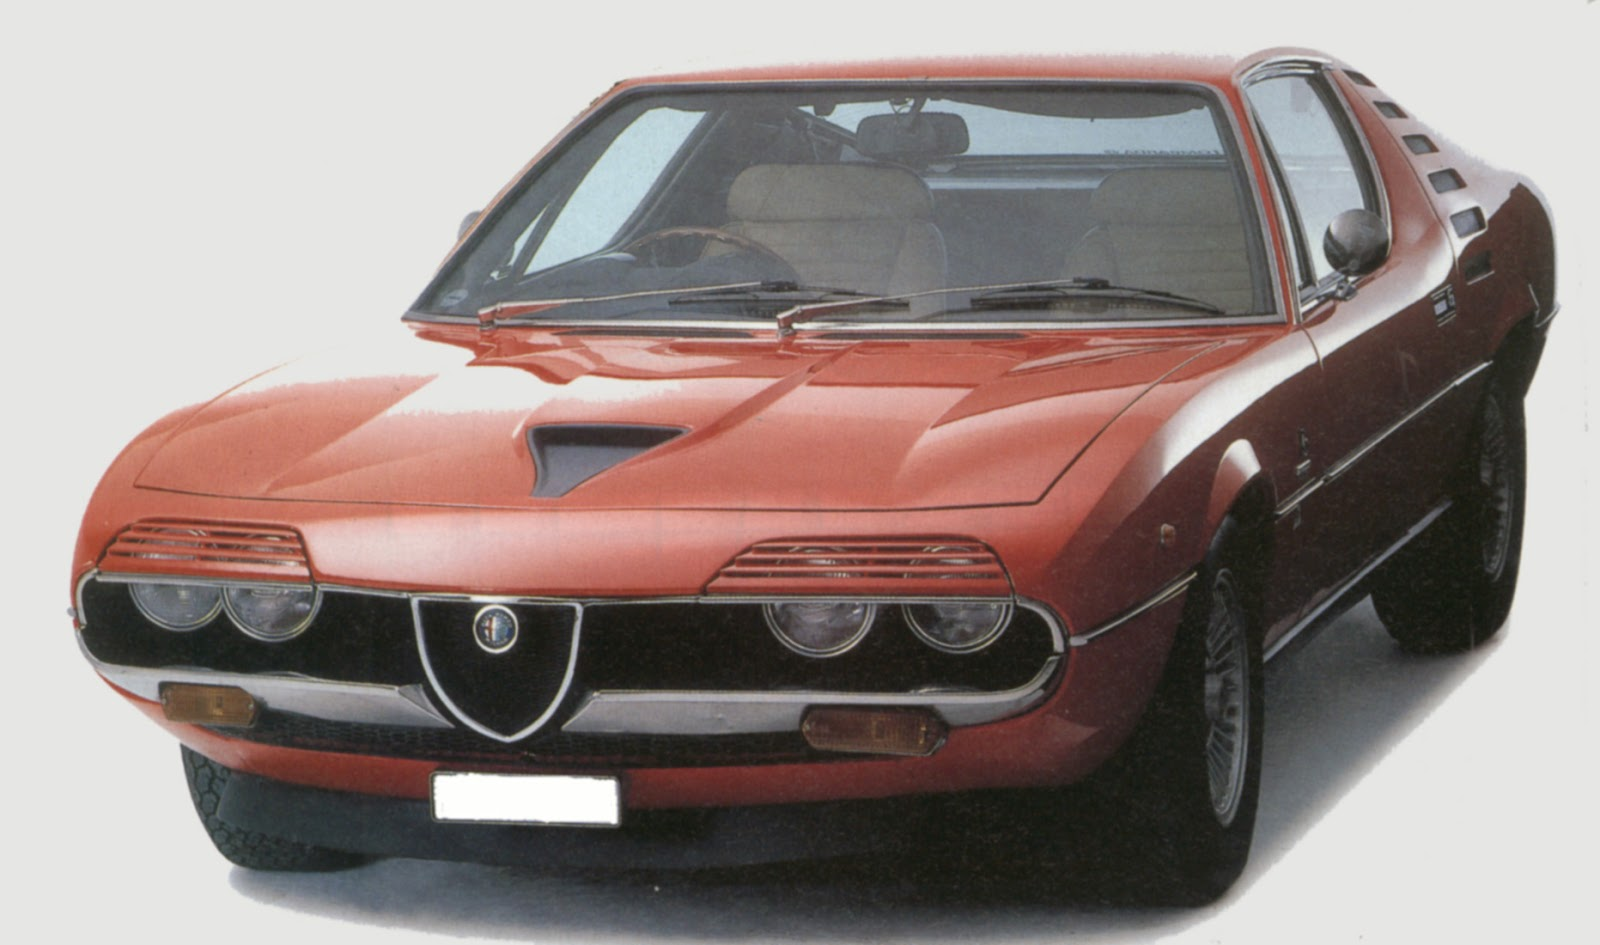 medium resolution of produced from 1971 to 1977 in limited numbers the montreal had a detuned lemans engine red hot italians alfa romeo